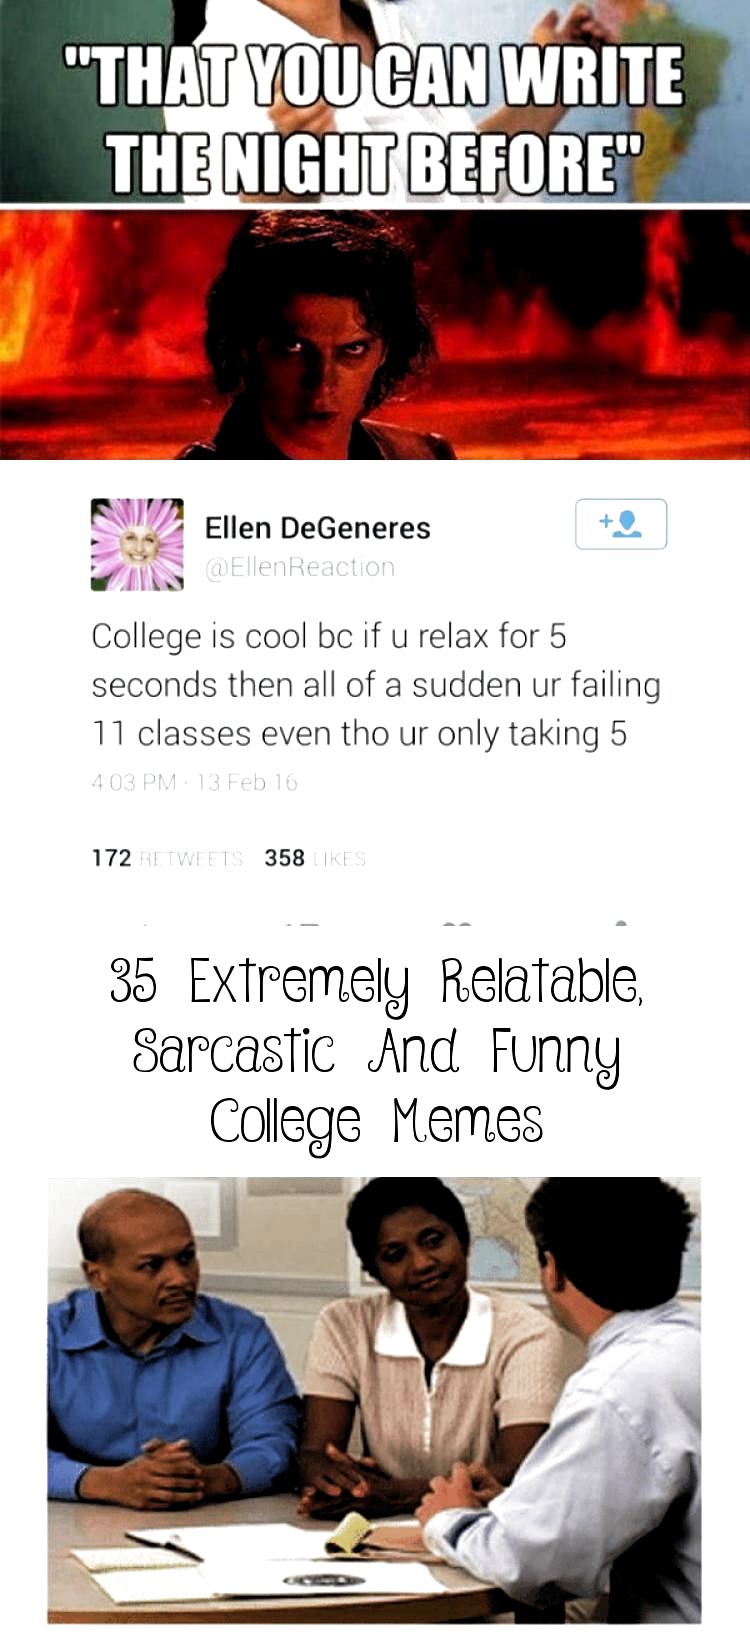 35 Extremely Relatable, Sarcastic And Funny College Memes